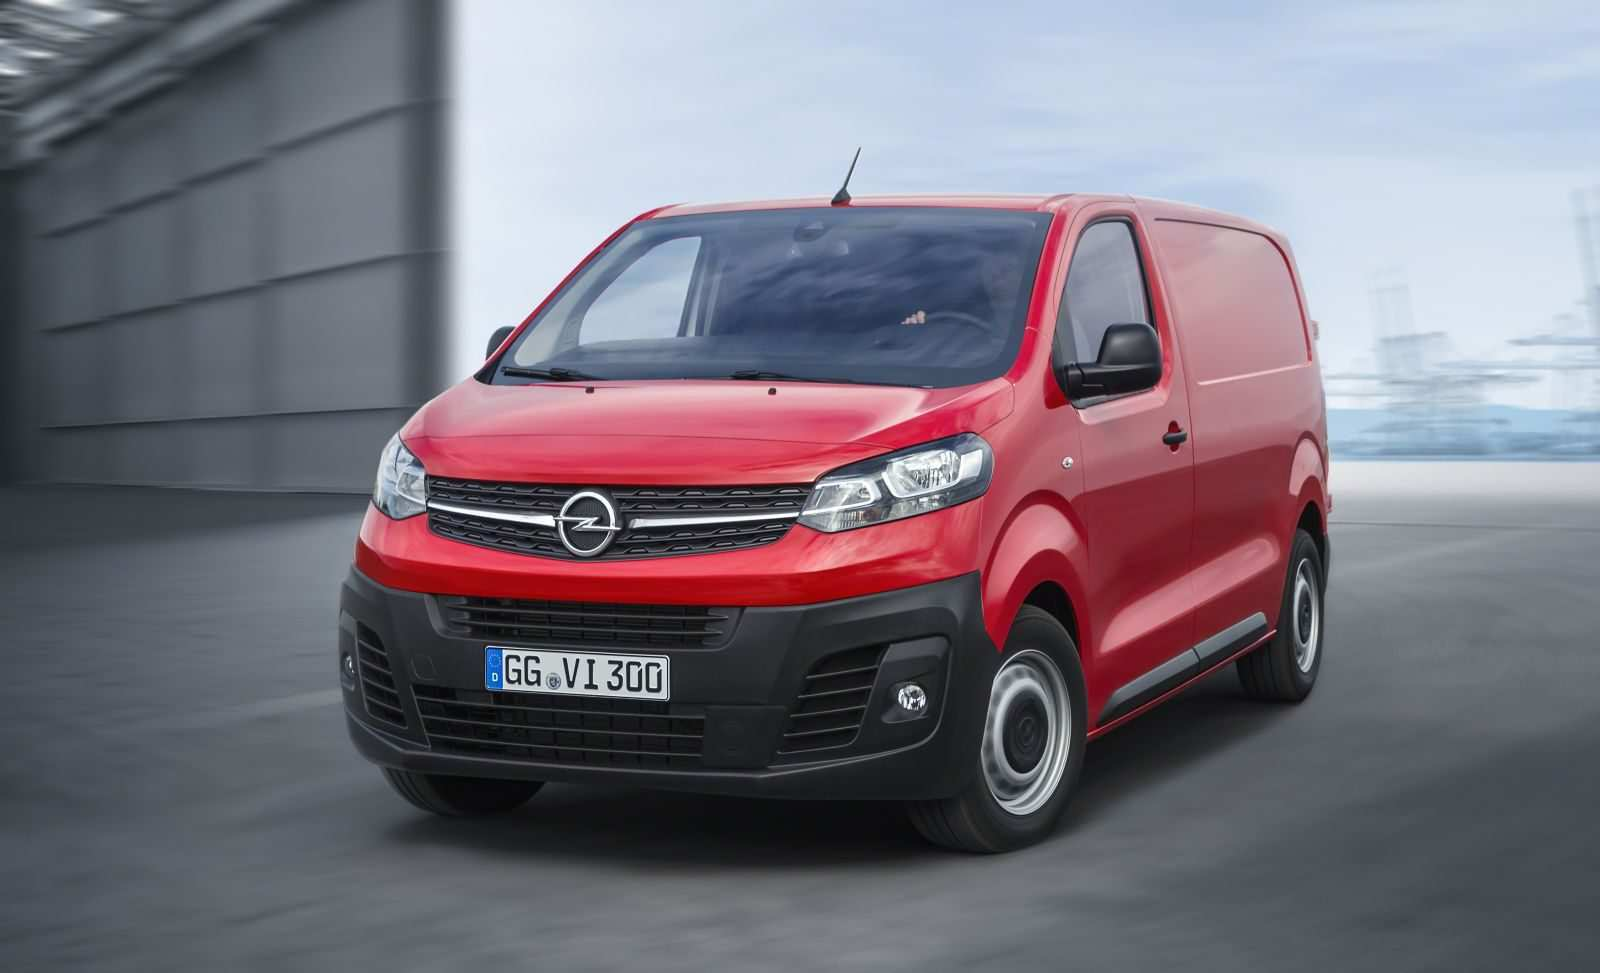 60 The Best Nieuwe Opel Vivaro 2020 Redesign And Review